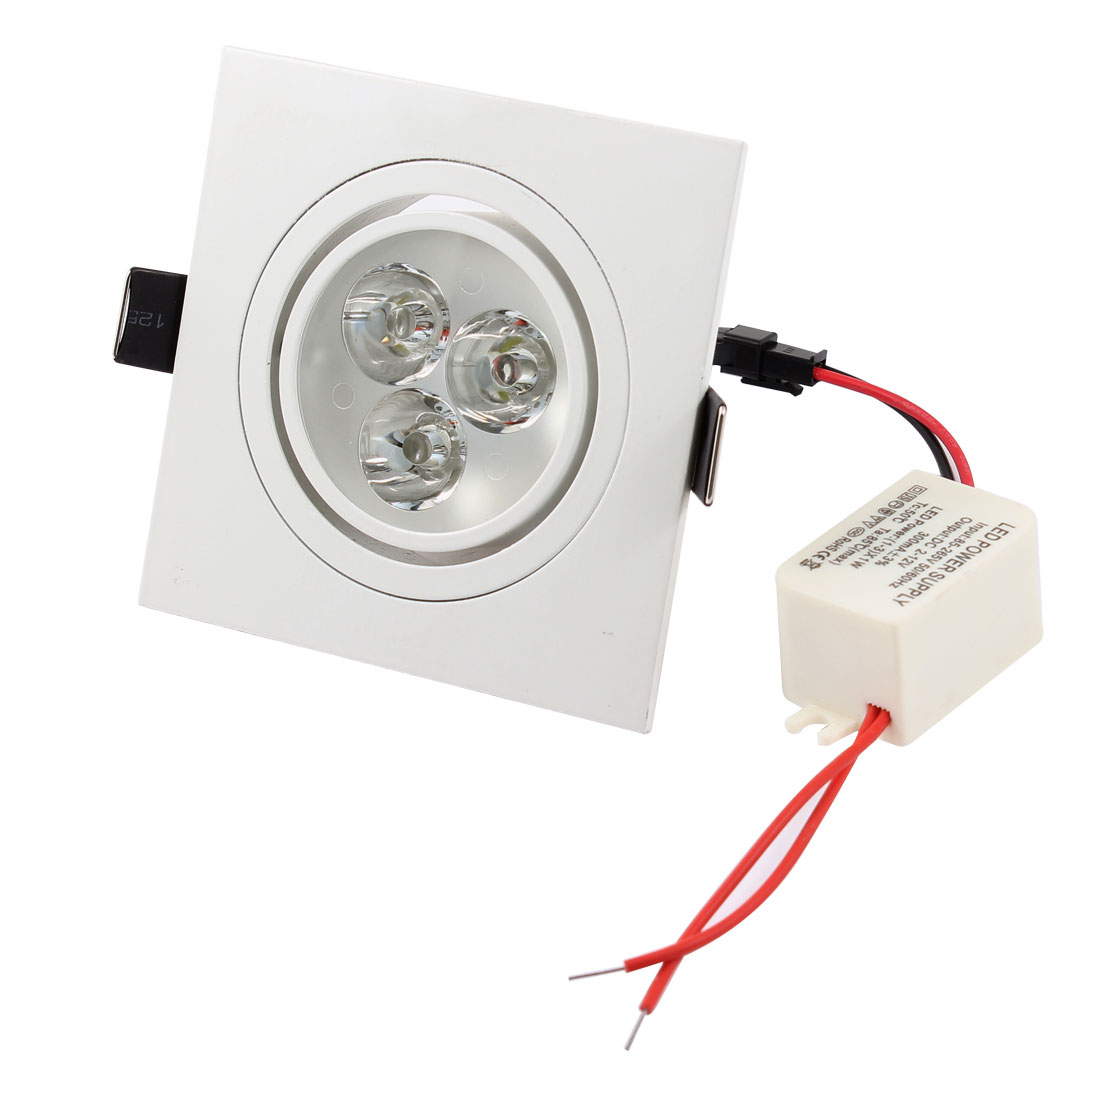 AC85V-265V 3W 3 LEDs Pure White Ceiling Downlight Recessed Spotlight Lamp Bulb